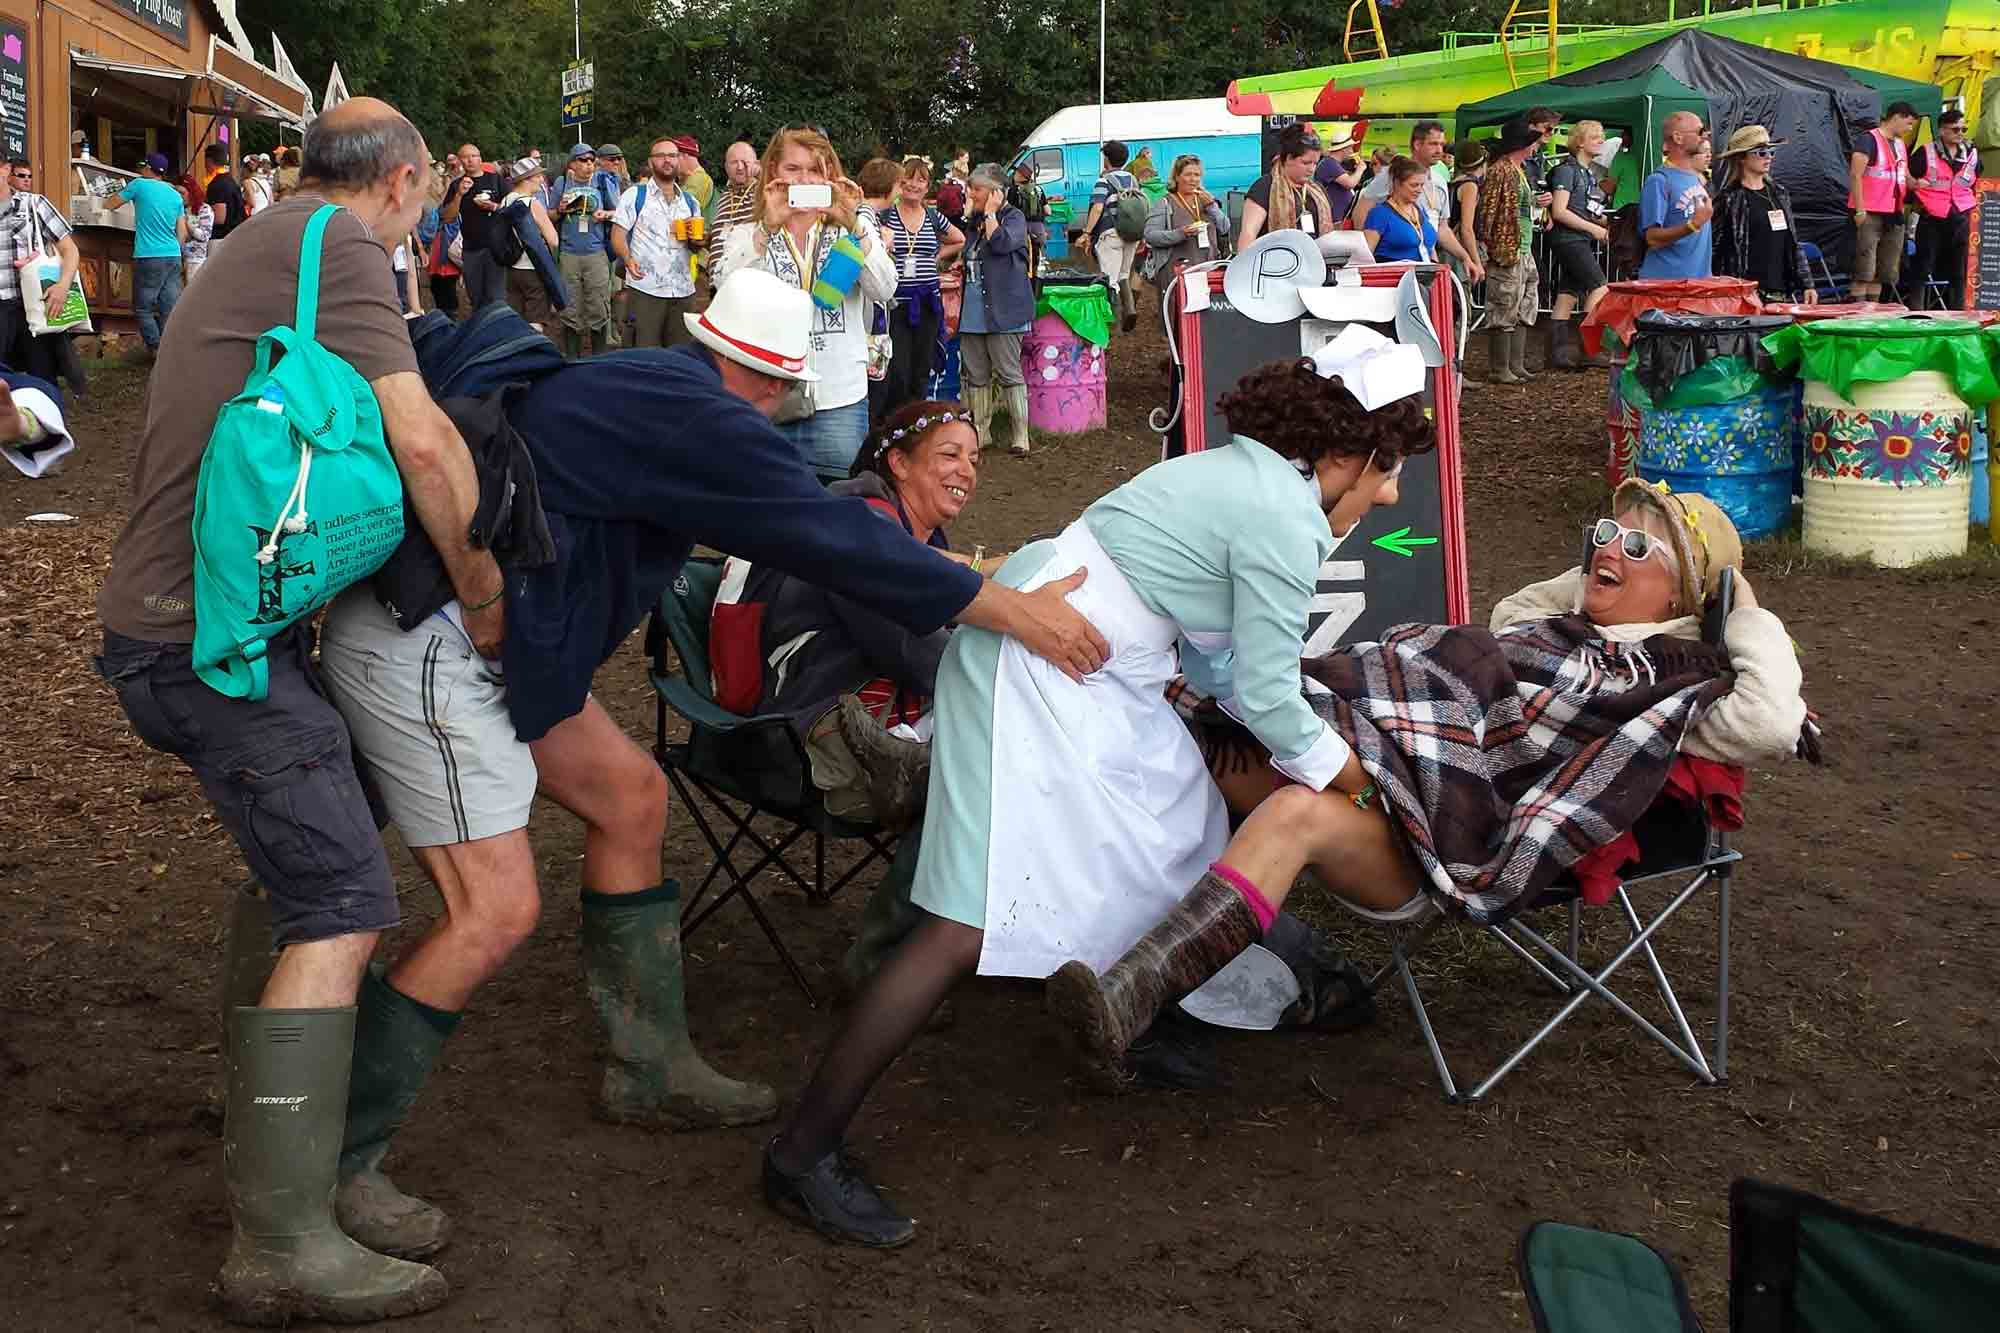 Midwives on Call help deliver a baby at Glastonbury Festival